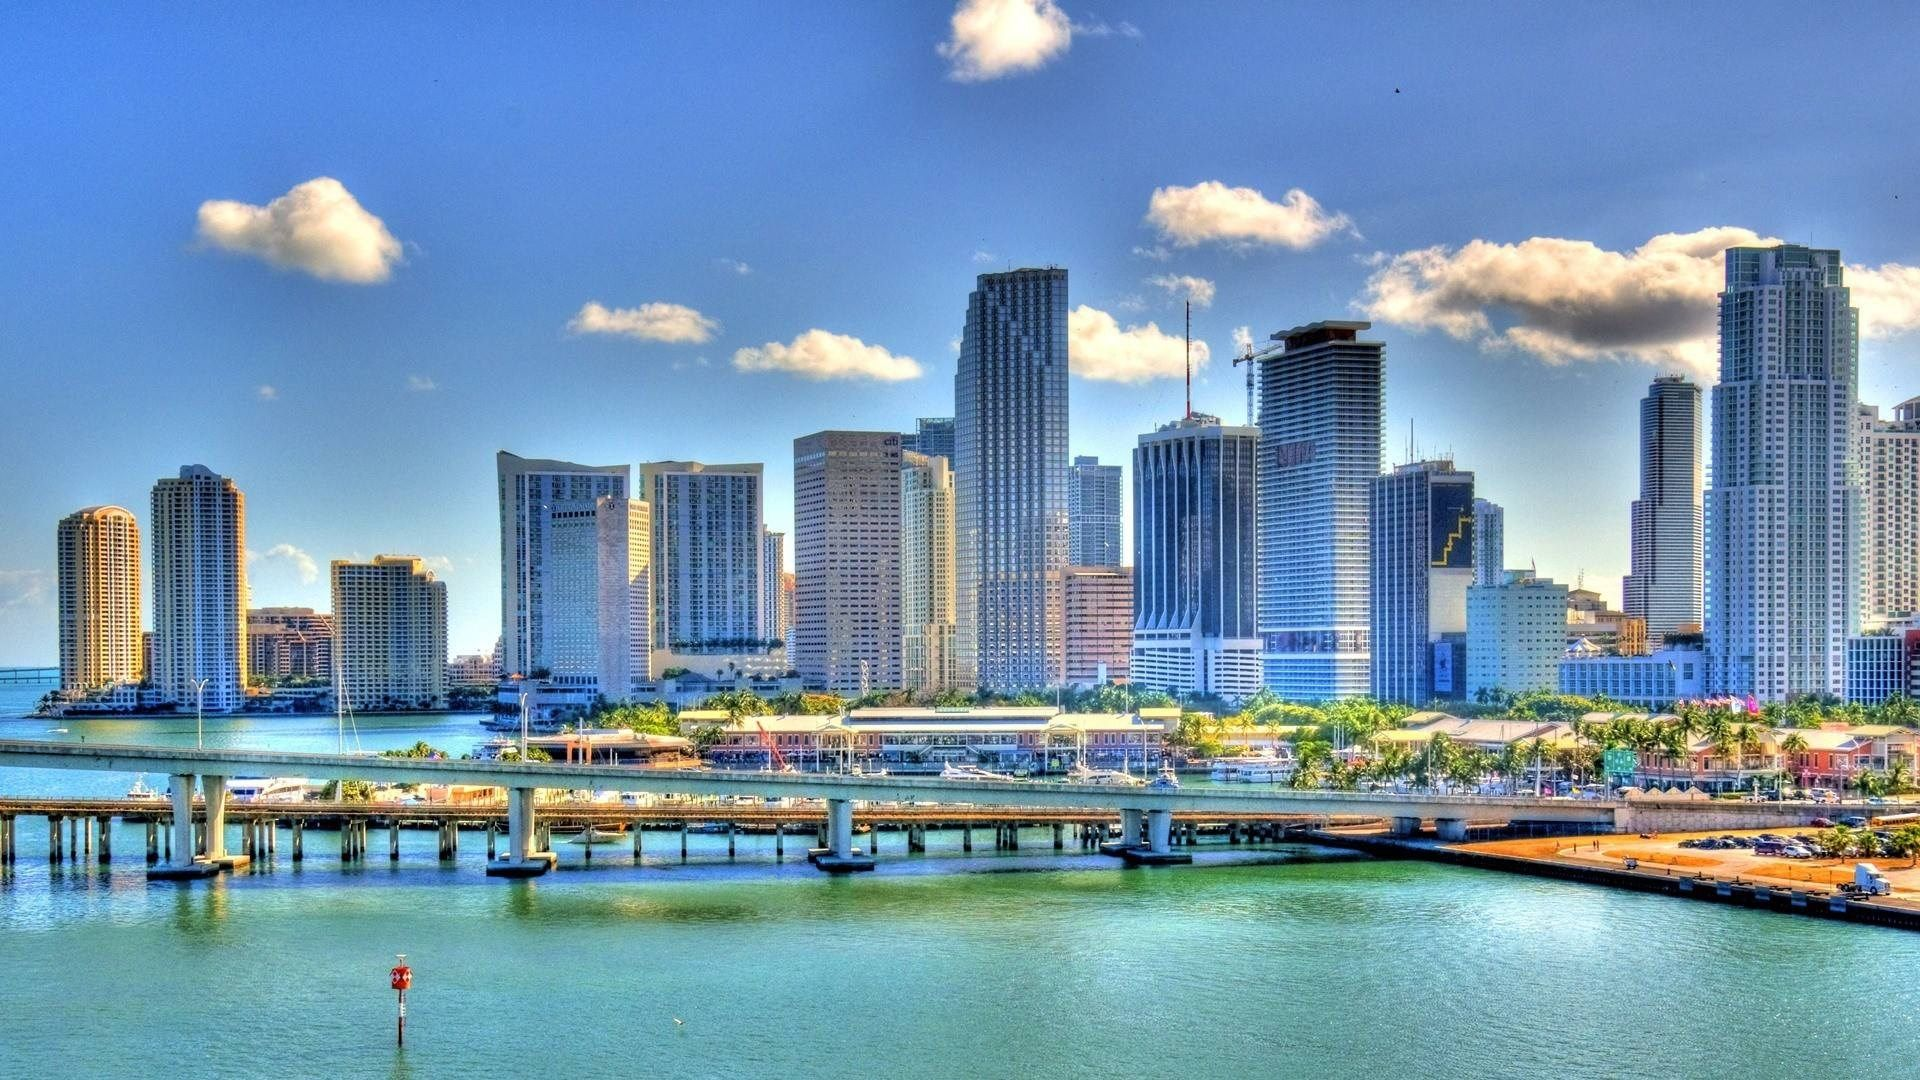 Miami Hd Wallpaper 1